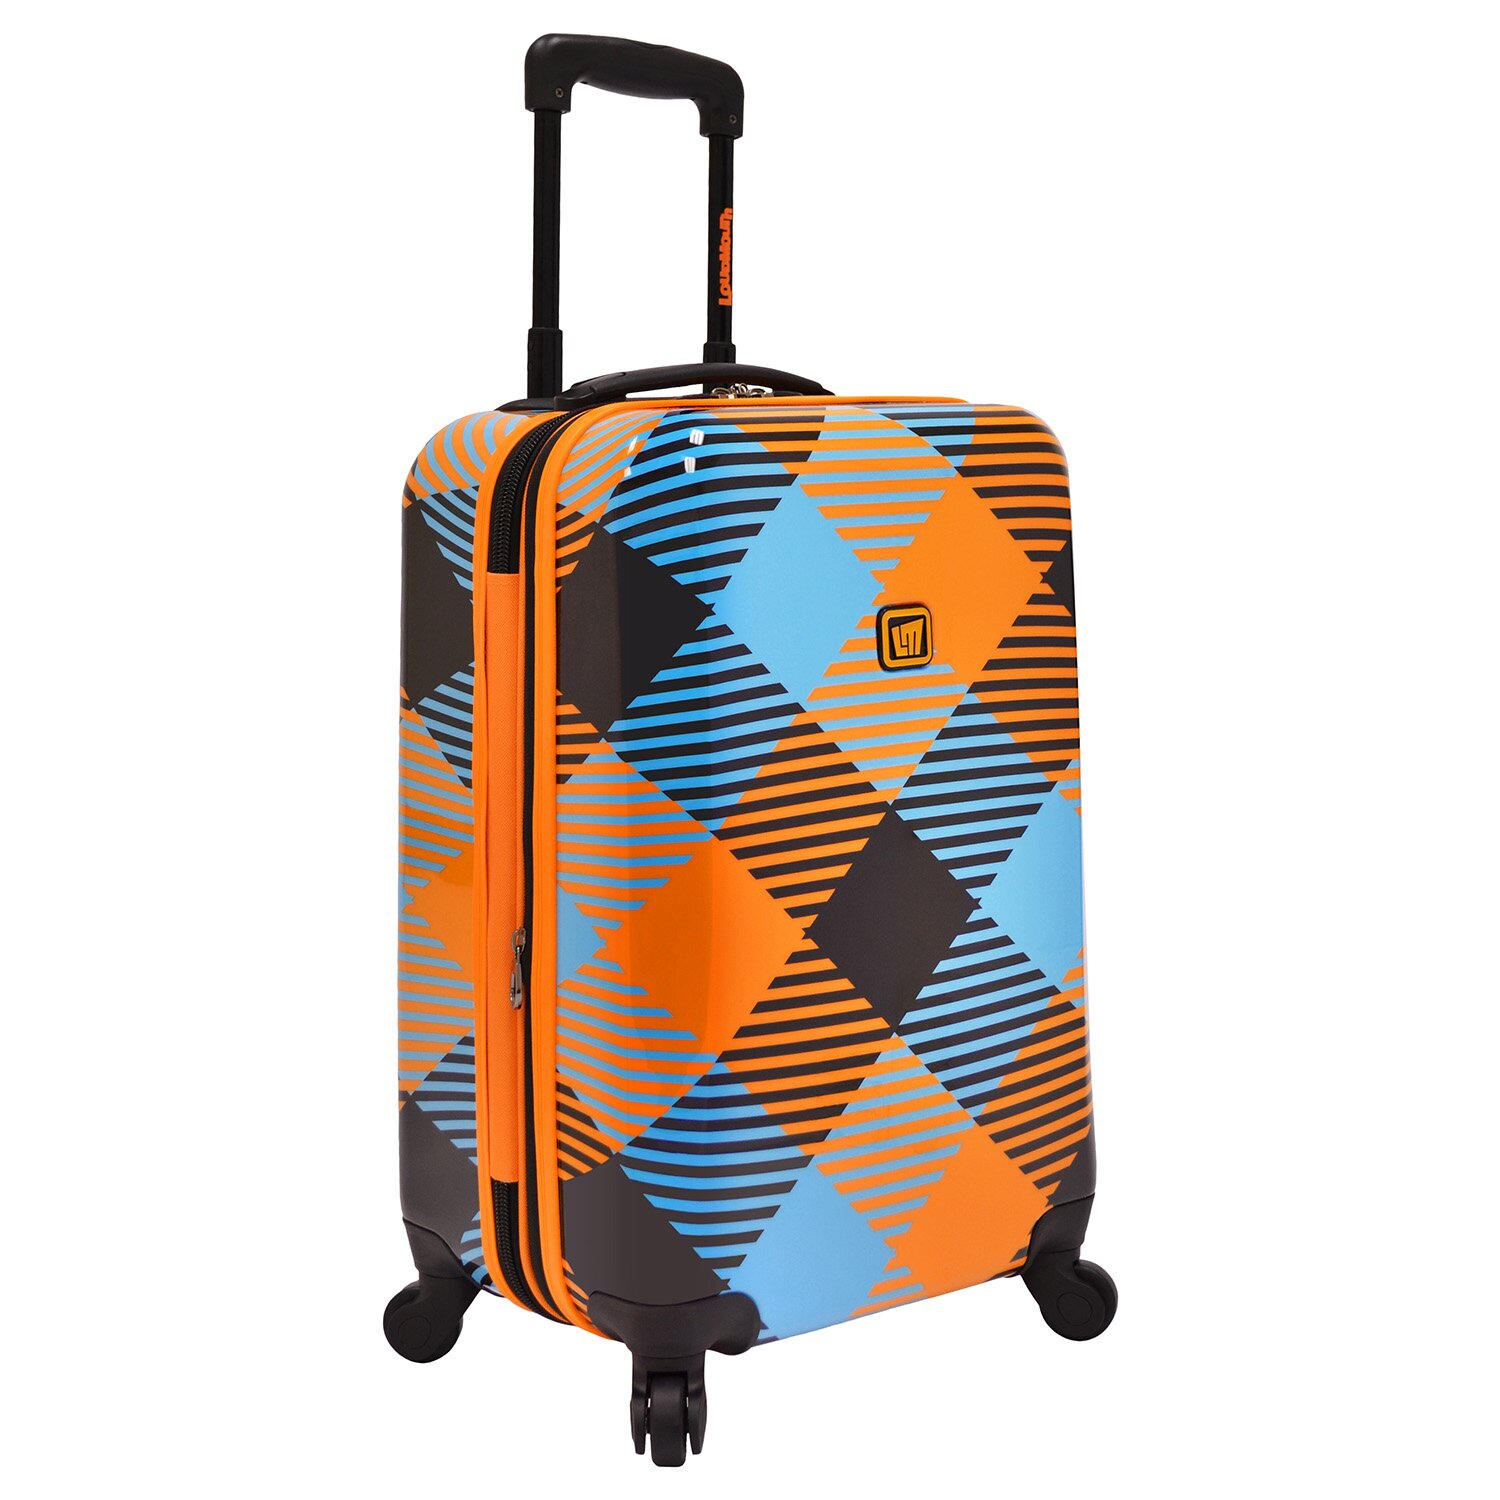 Loudmouth Luggage Microwave 22 Quot Hardsided Carry On Spinner